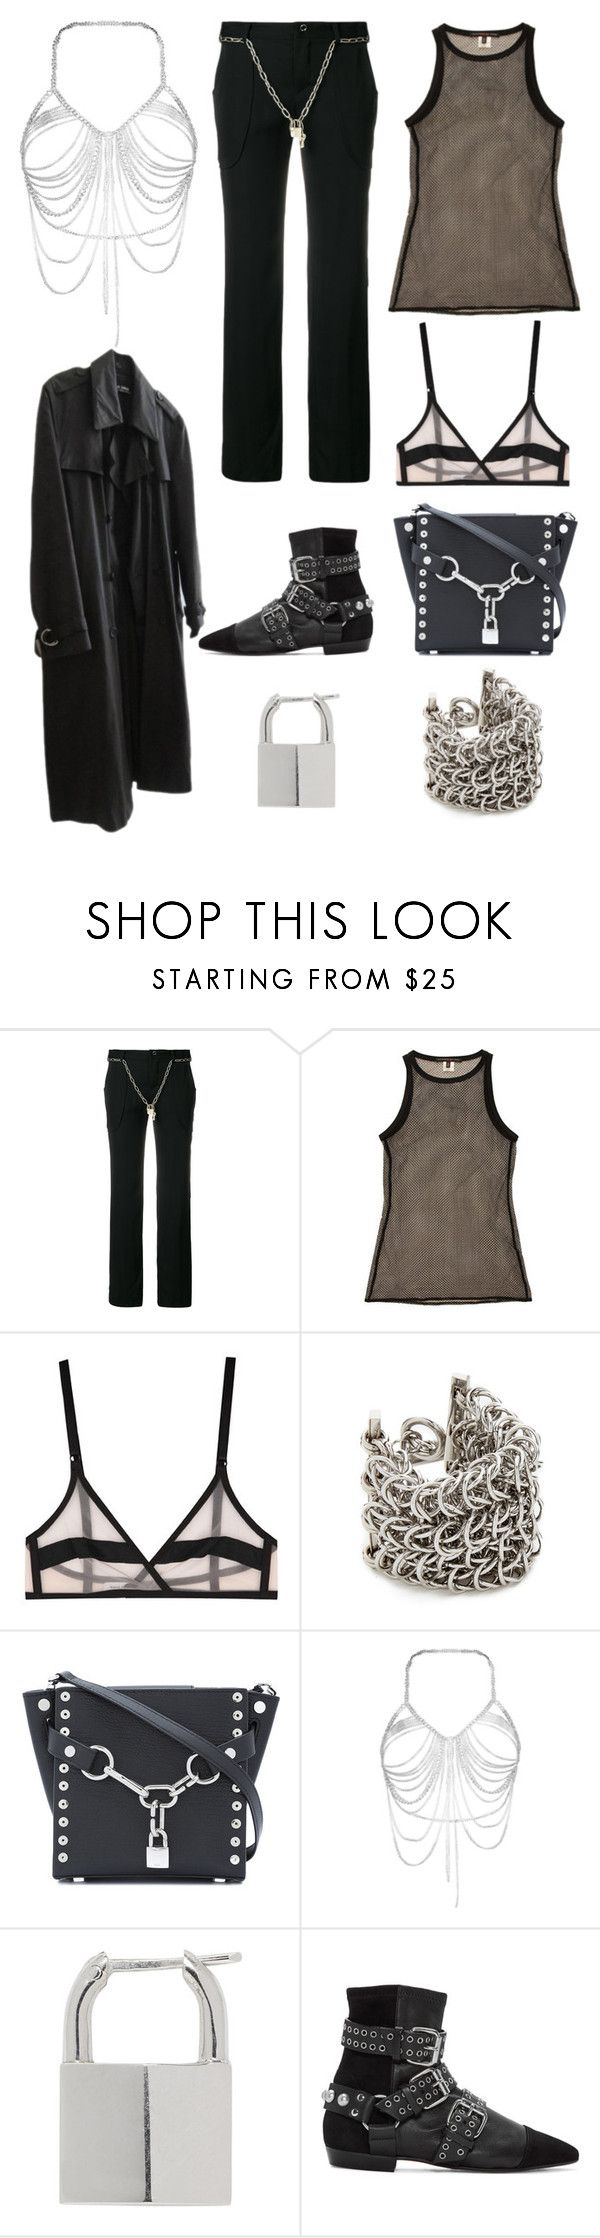 """""""Untitled #1271"""" by nojawrabbit ❤ liked on Polyvore featuring Jean-Paul Gaultier, Alessandro Dell'Acqua, Yasmine eslami, Alexander Wang, Lauren Klassen, Isabel Marant and Raf Simons"""